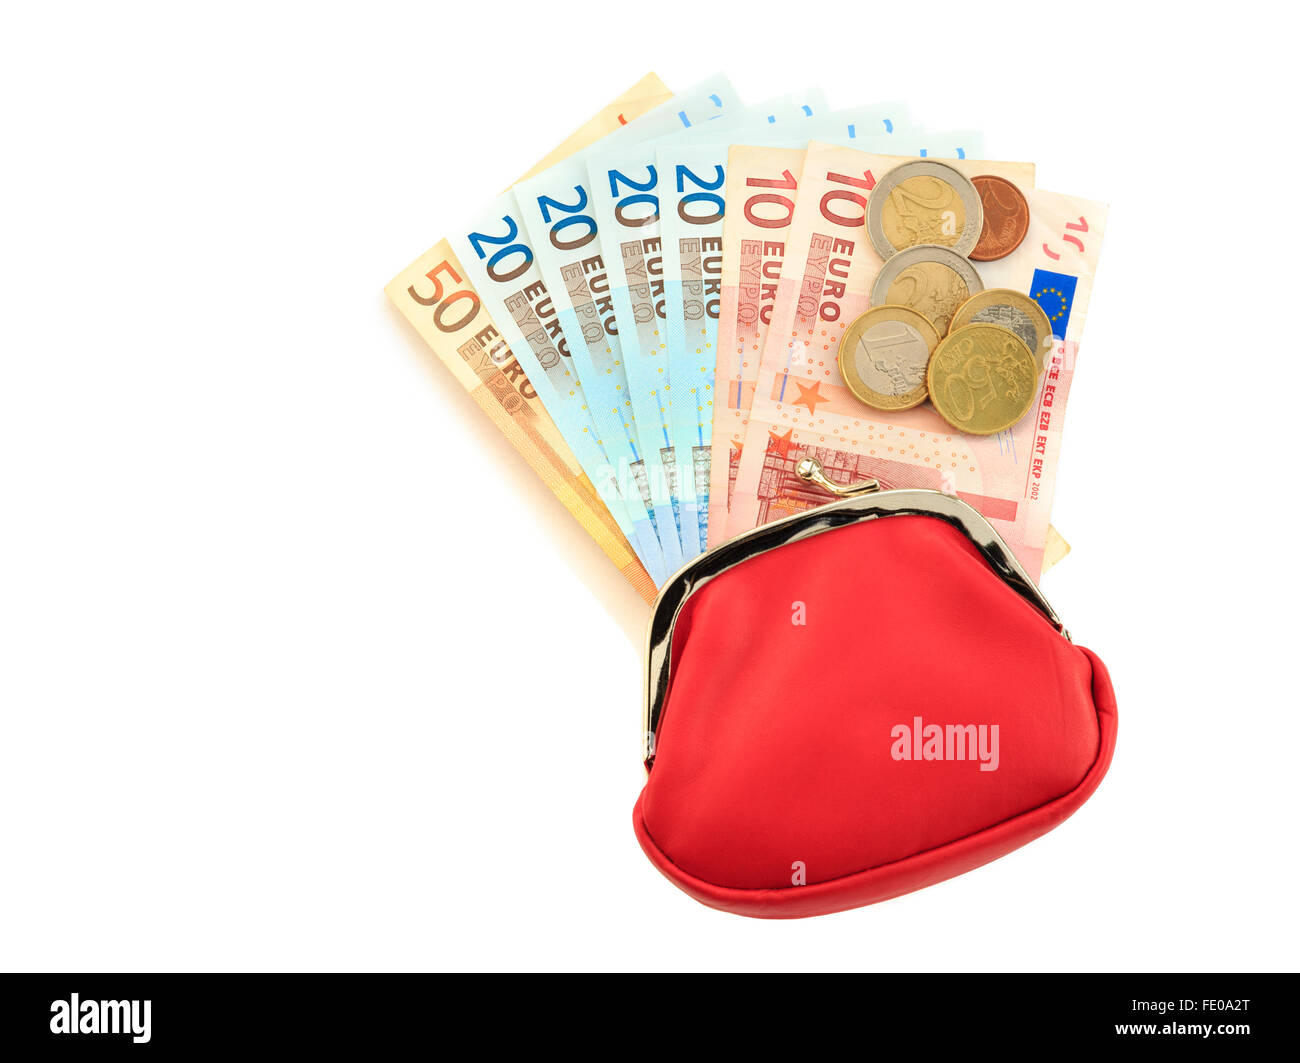 Red money purse containing fifty, twenty, ten Euro notes with some coins from Eurozone isolated on a white background - Stock Image